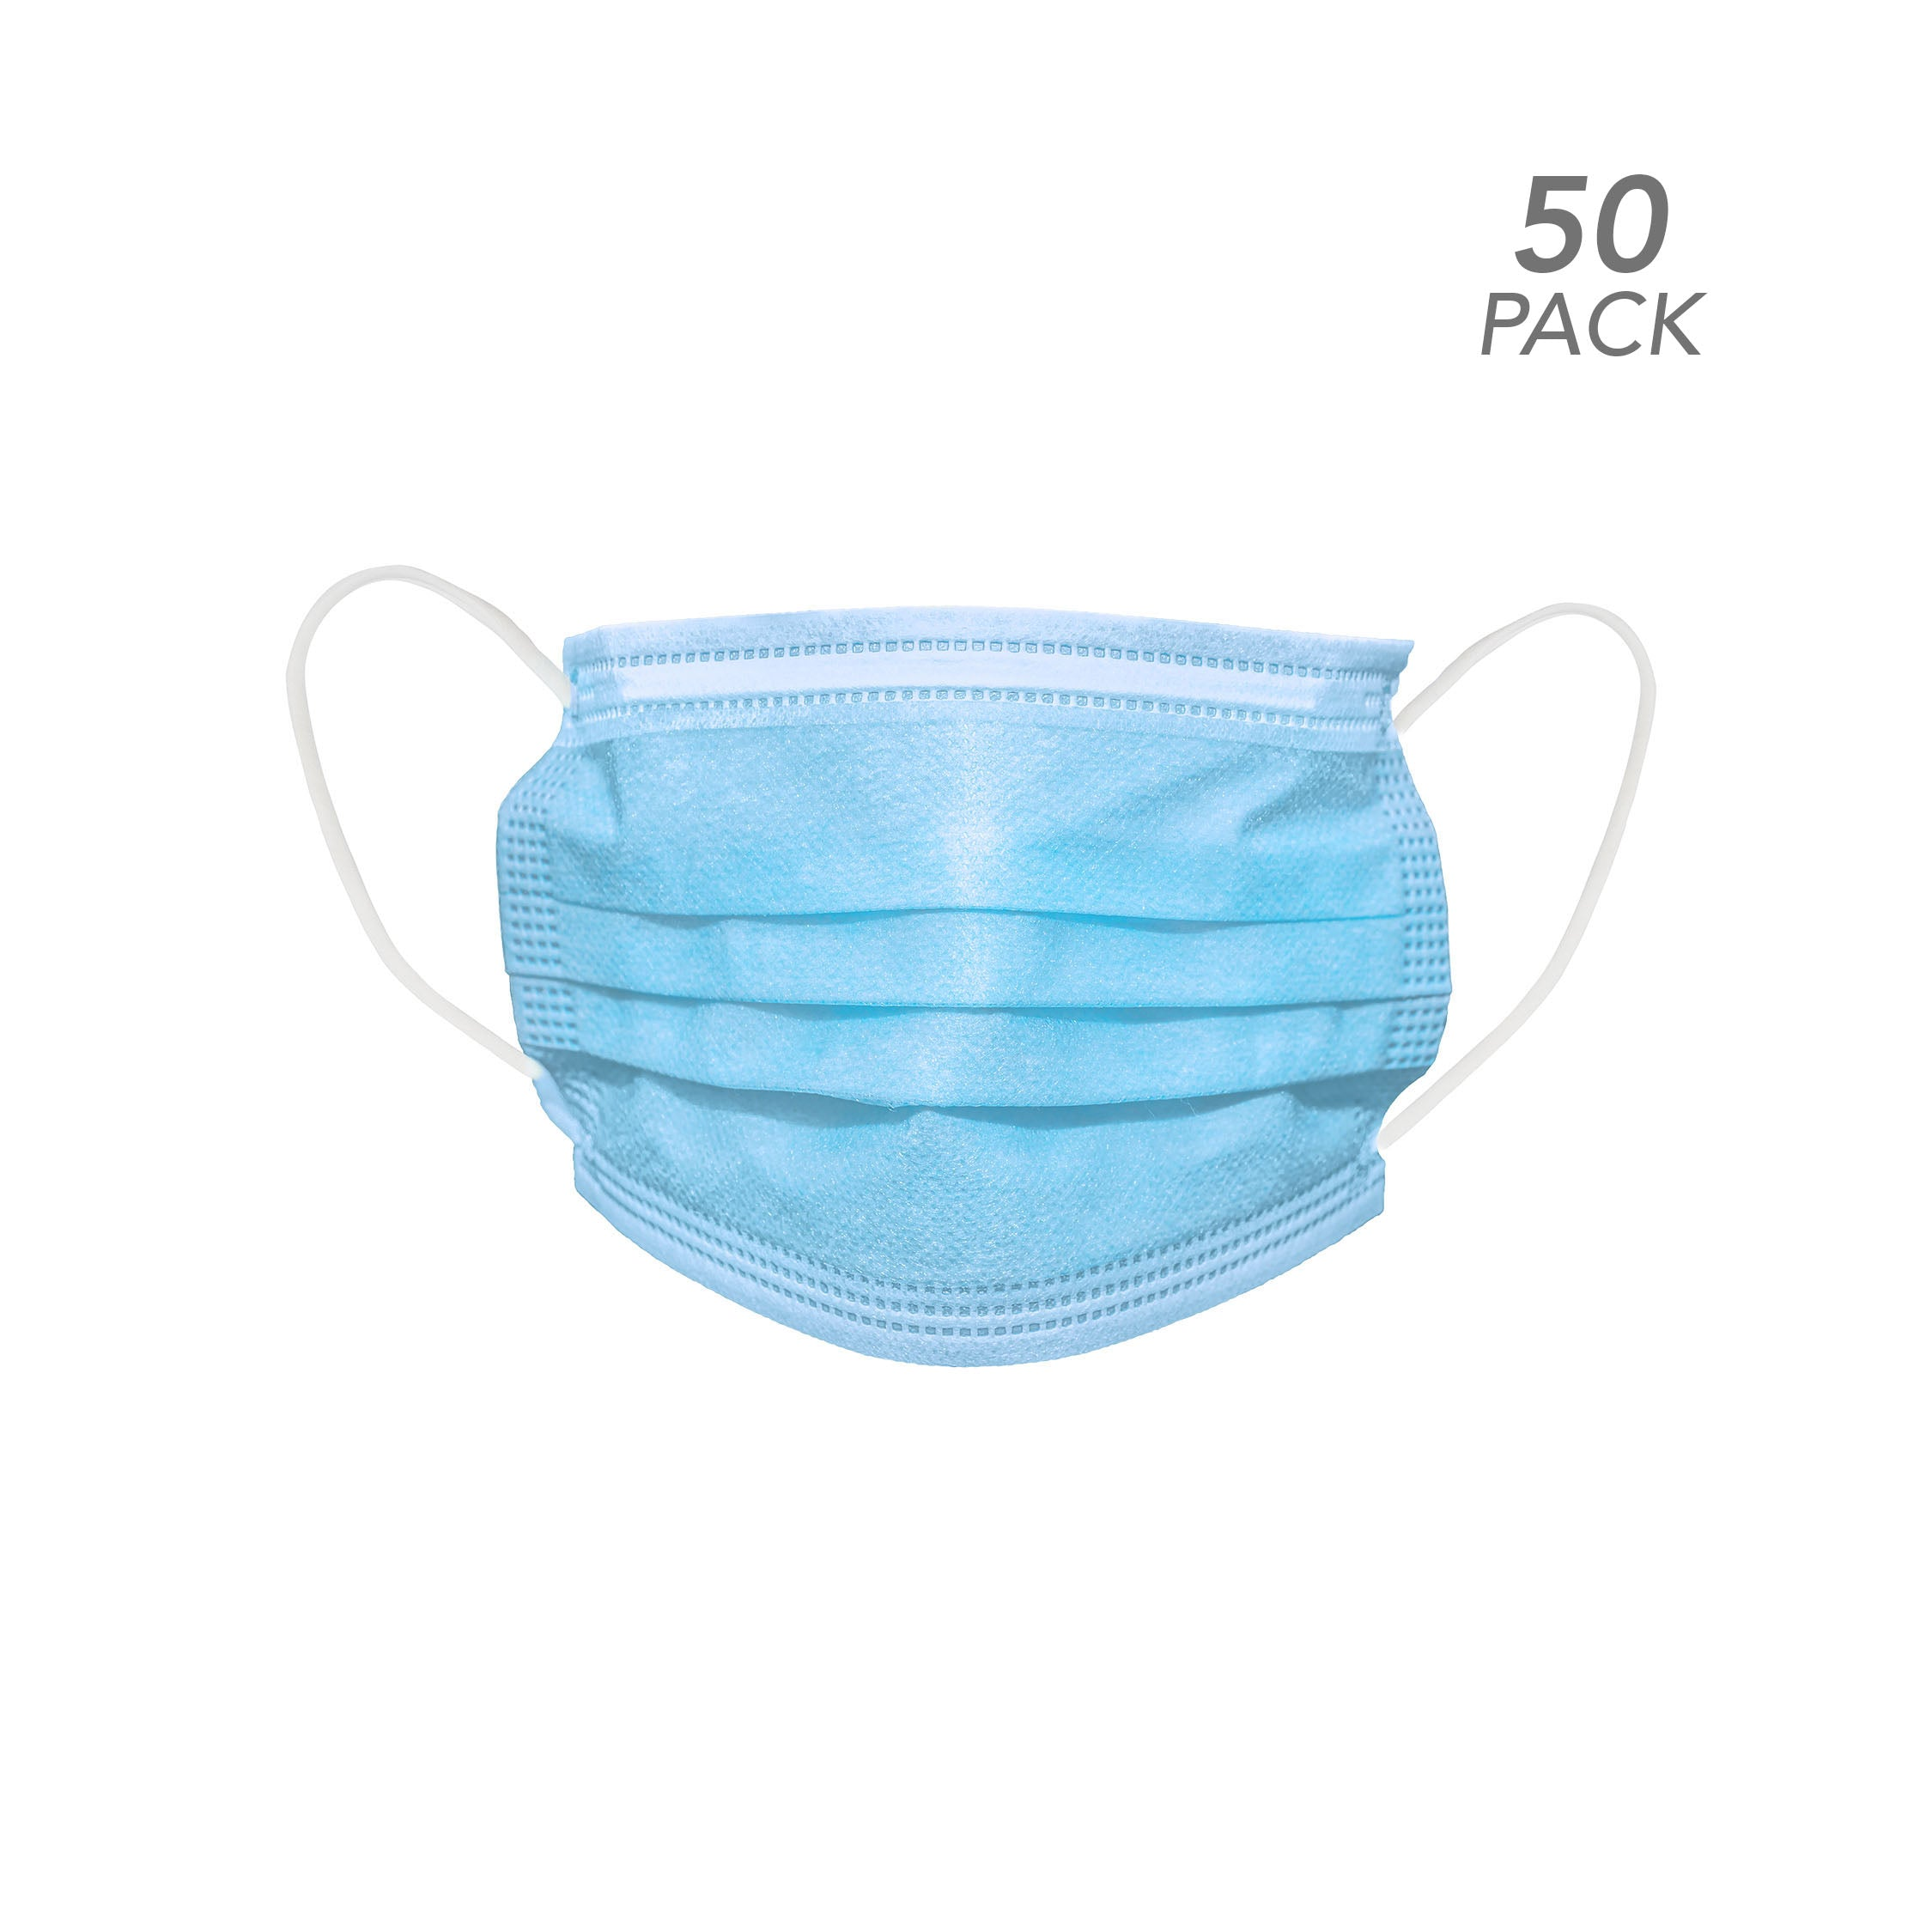 50 PACK - Disposable Protective Mask - 3 Ply